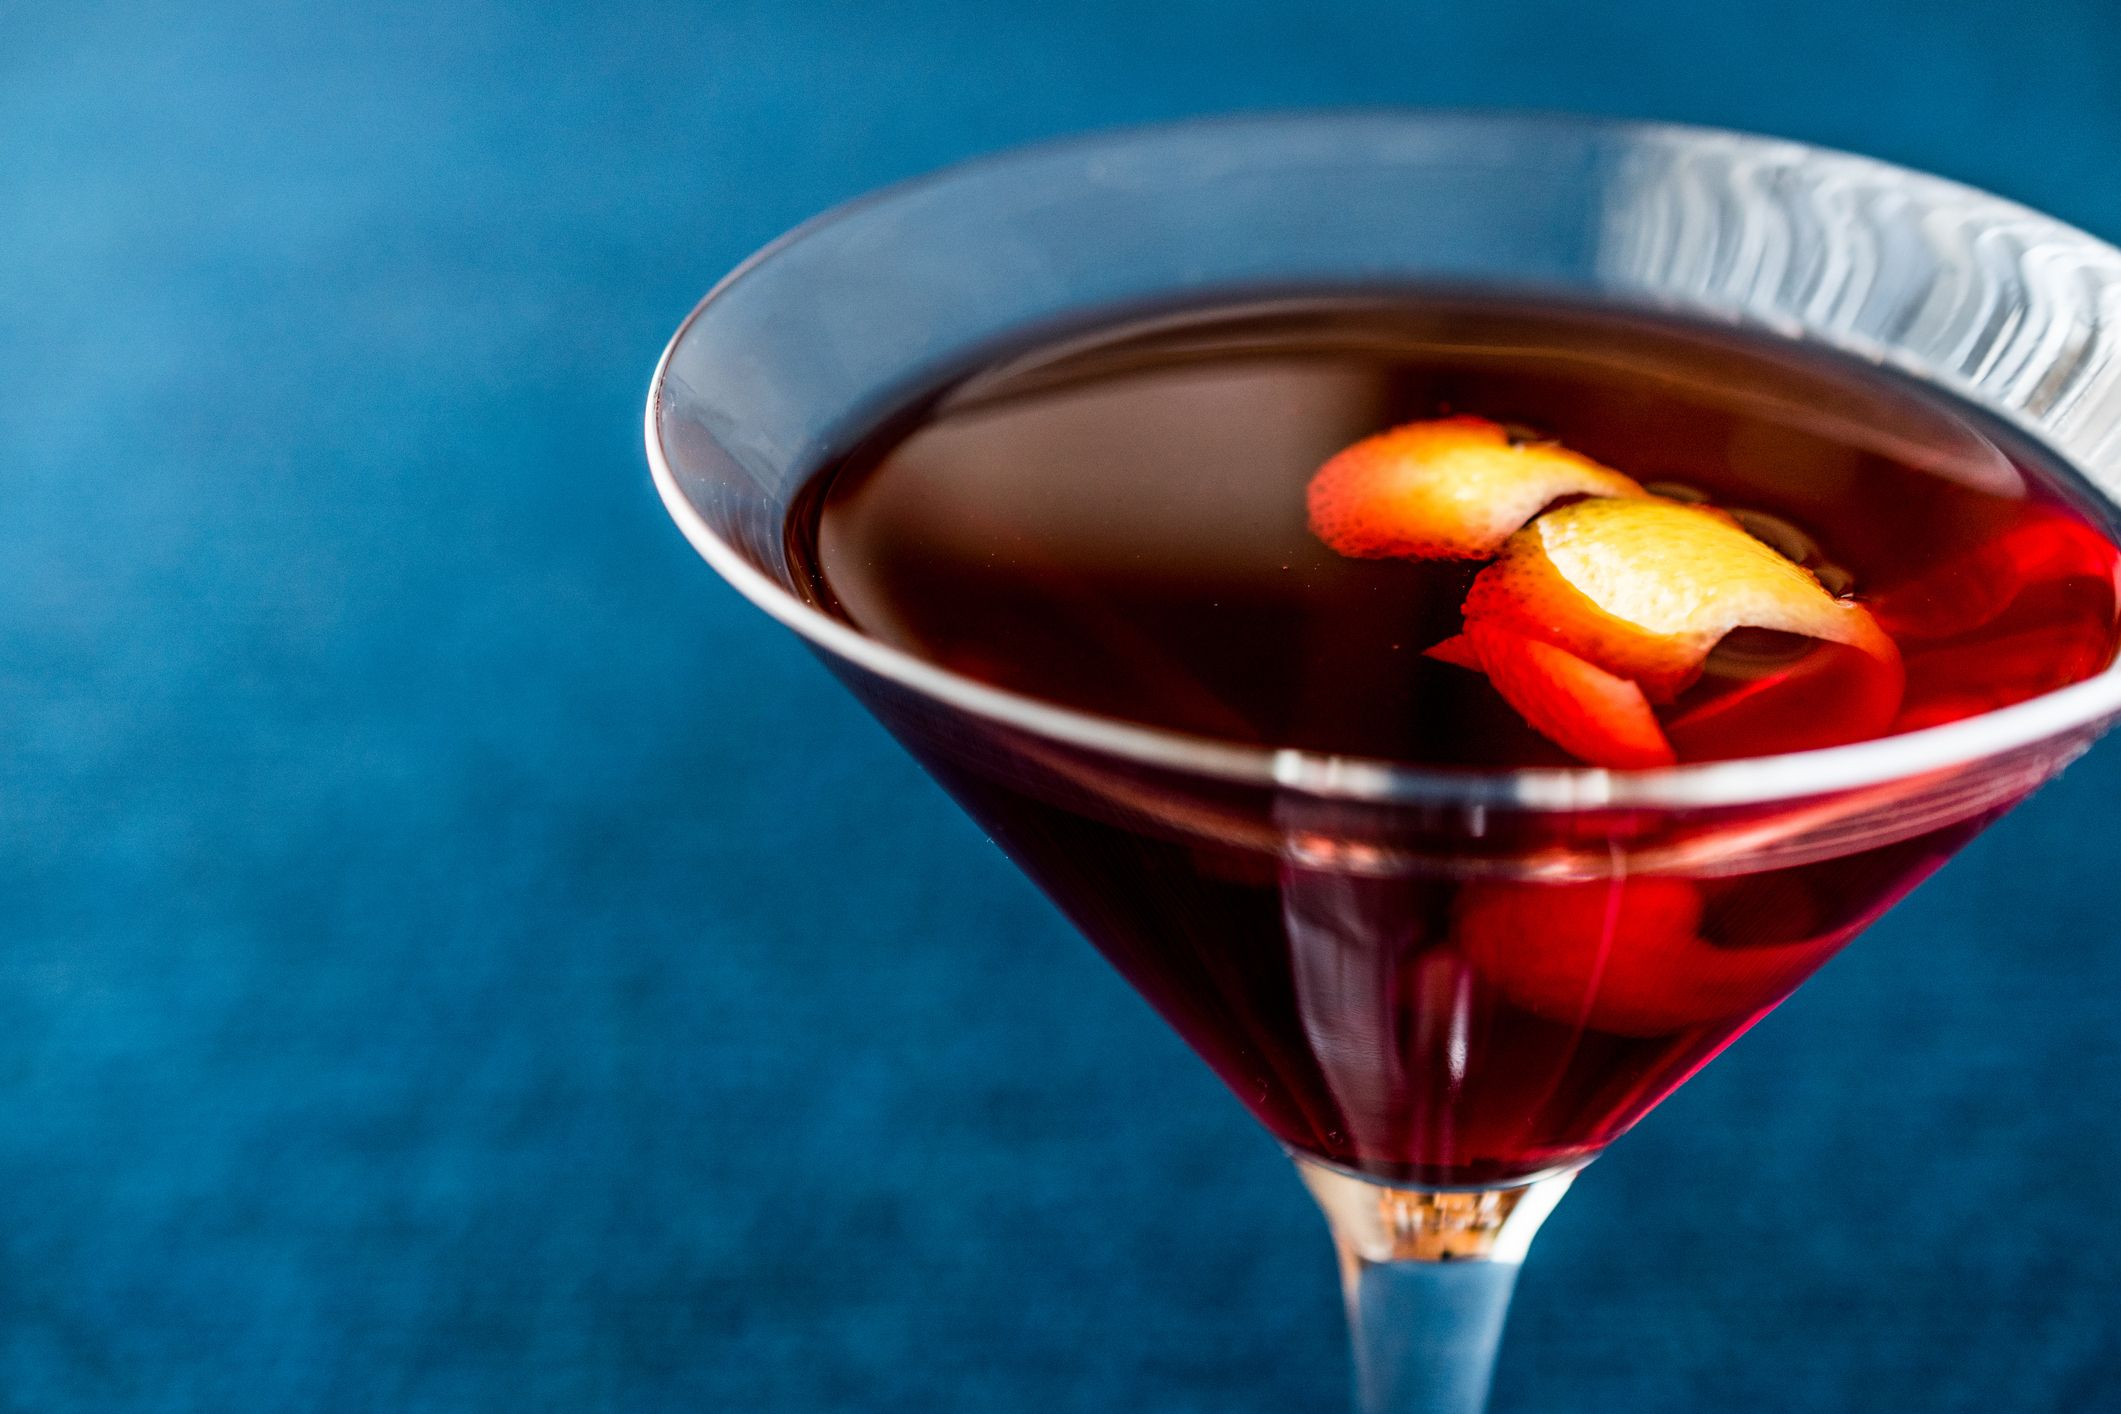 How To Make A Low Abv Manhattan For Dry January